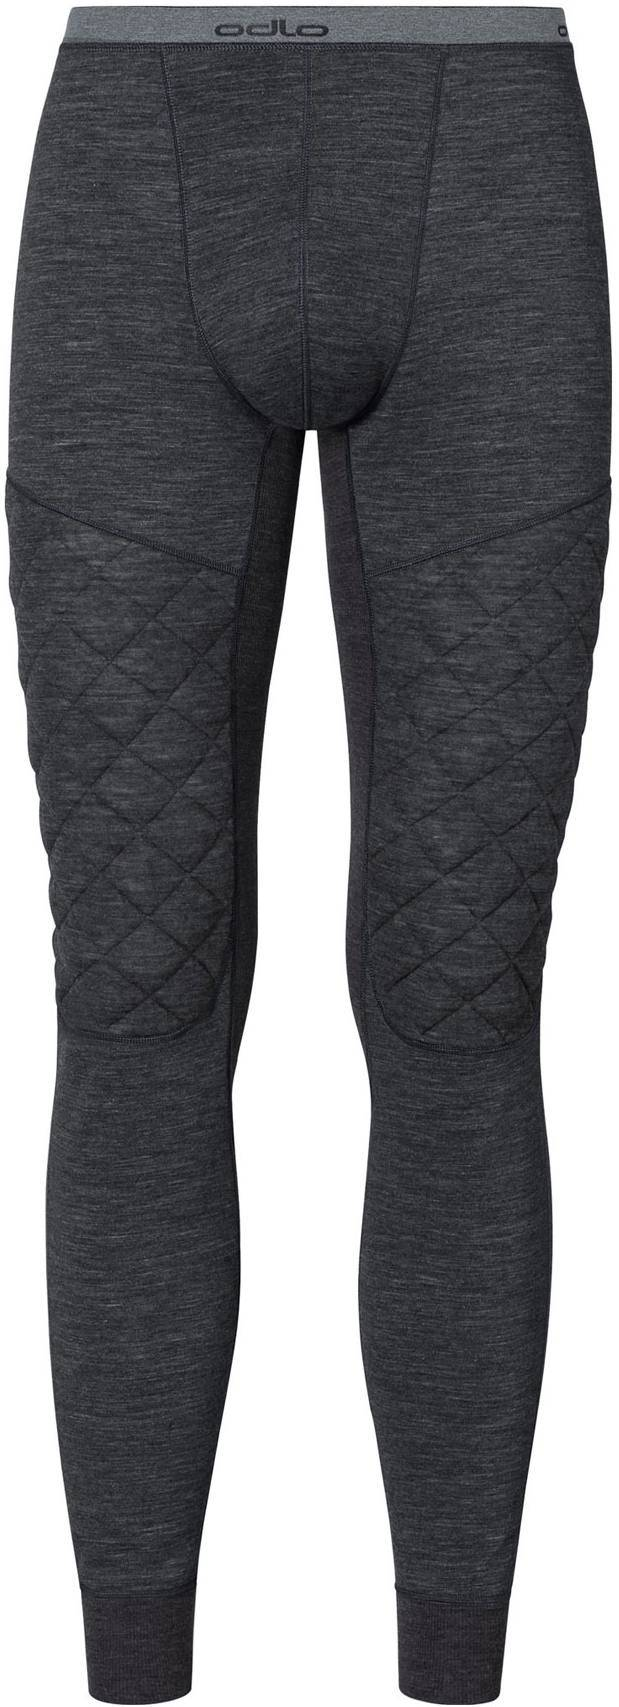 Odlo Revolution X-Warm Long Pants Musta S